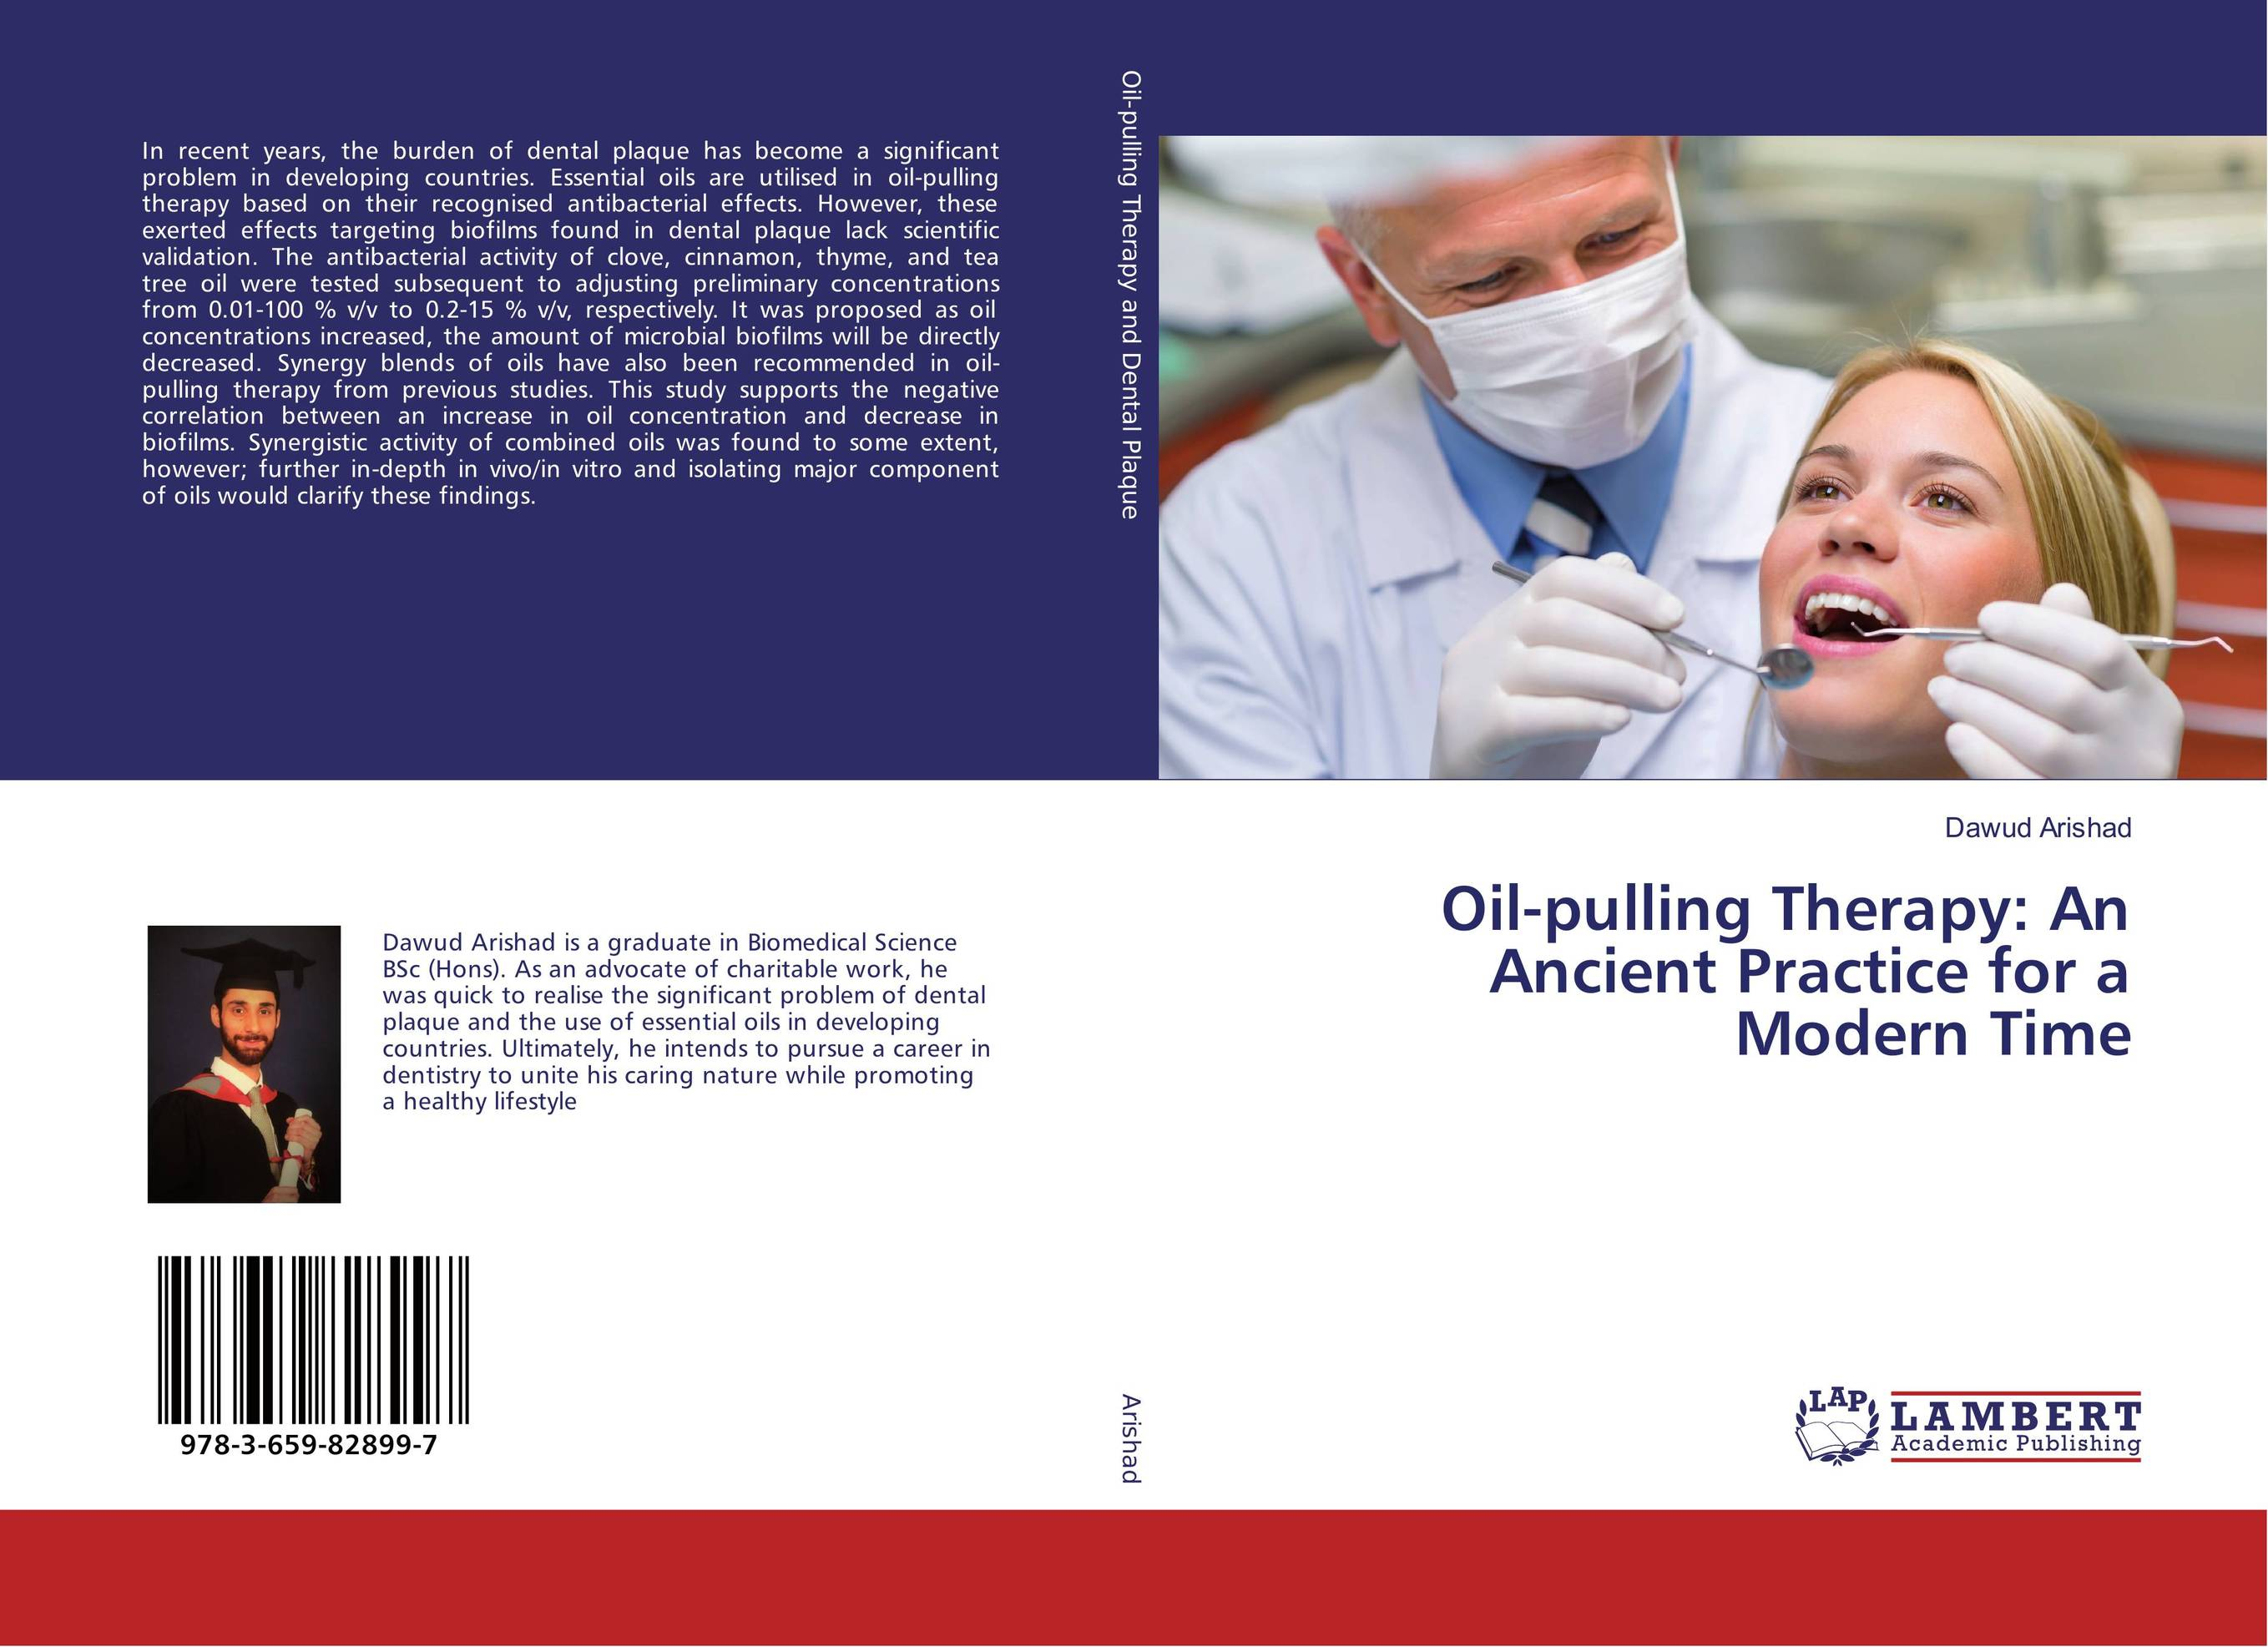 Oil-pulling Therapy: An Ancient Practice for a Modern Time found in brooklyn